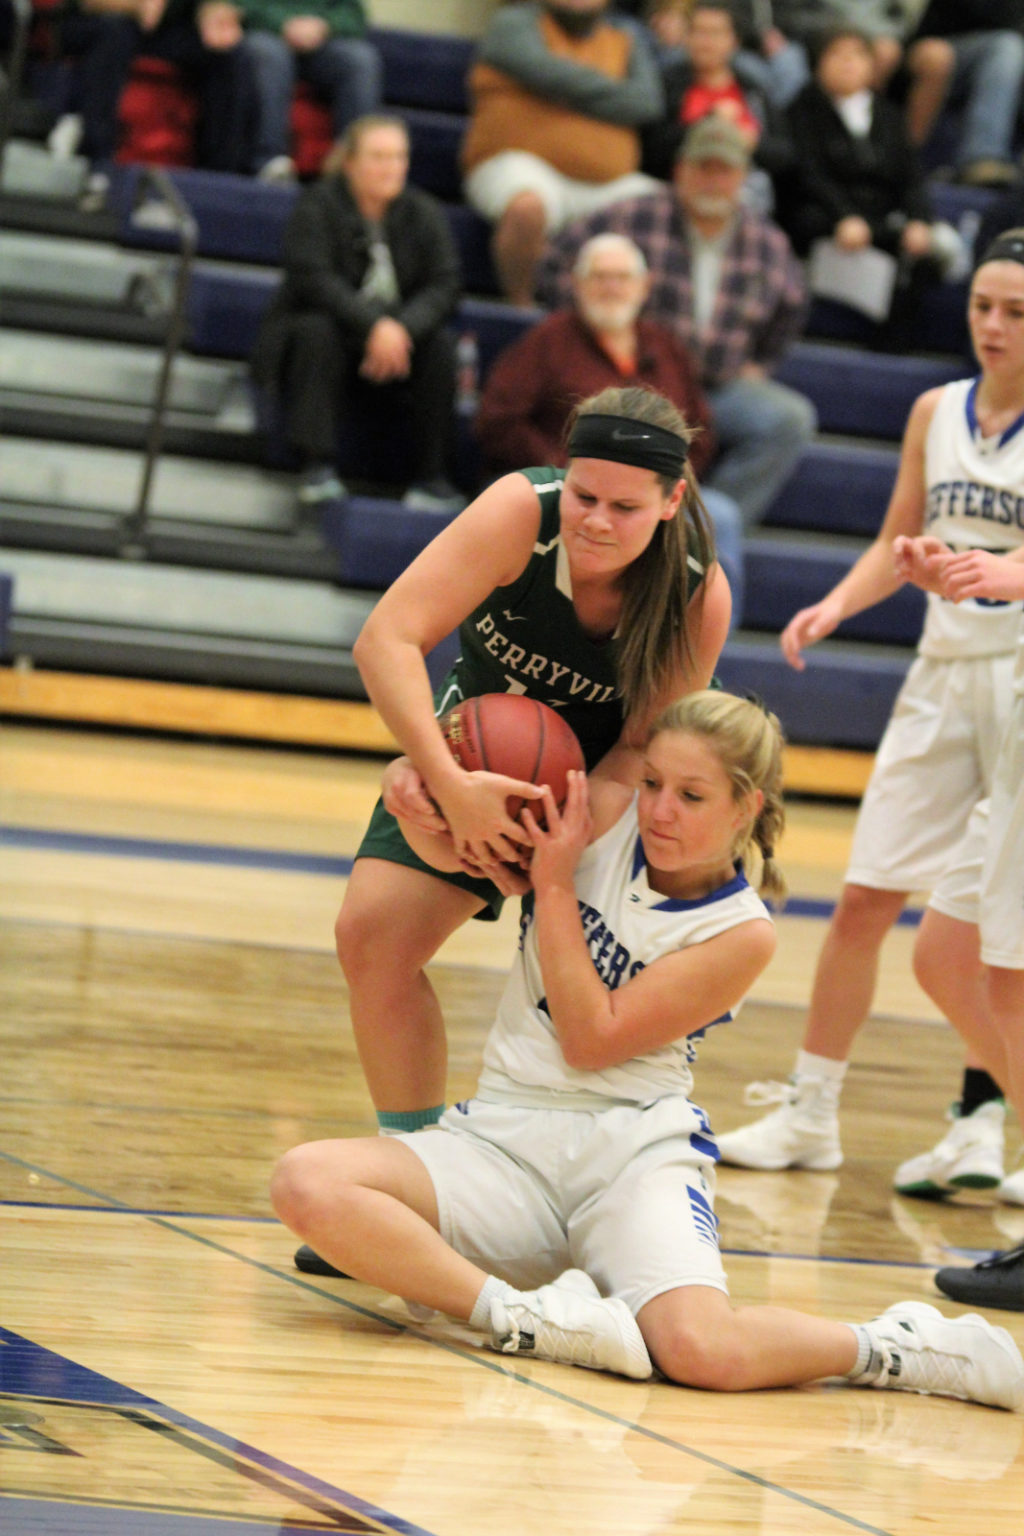 732862aa8 Jefferson Girls JV Basketball Team Has Tough Second Half in Loss to  Perryville